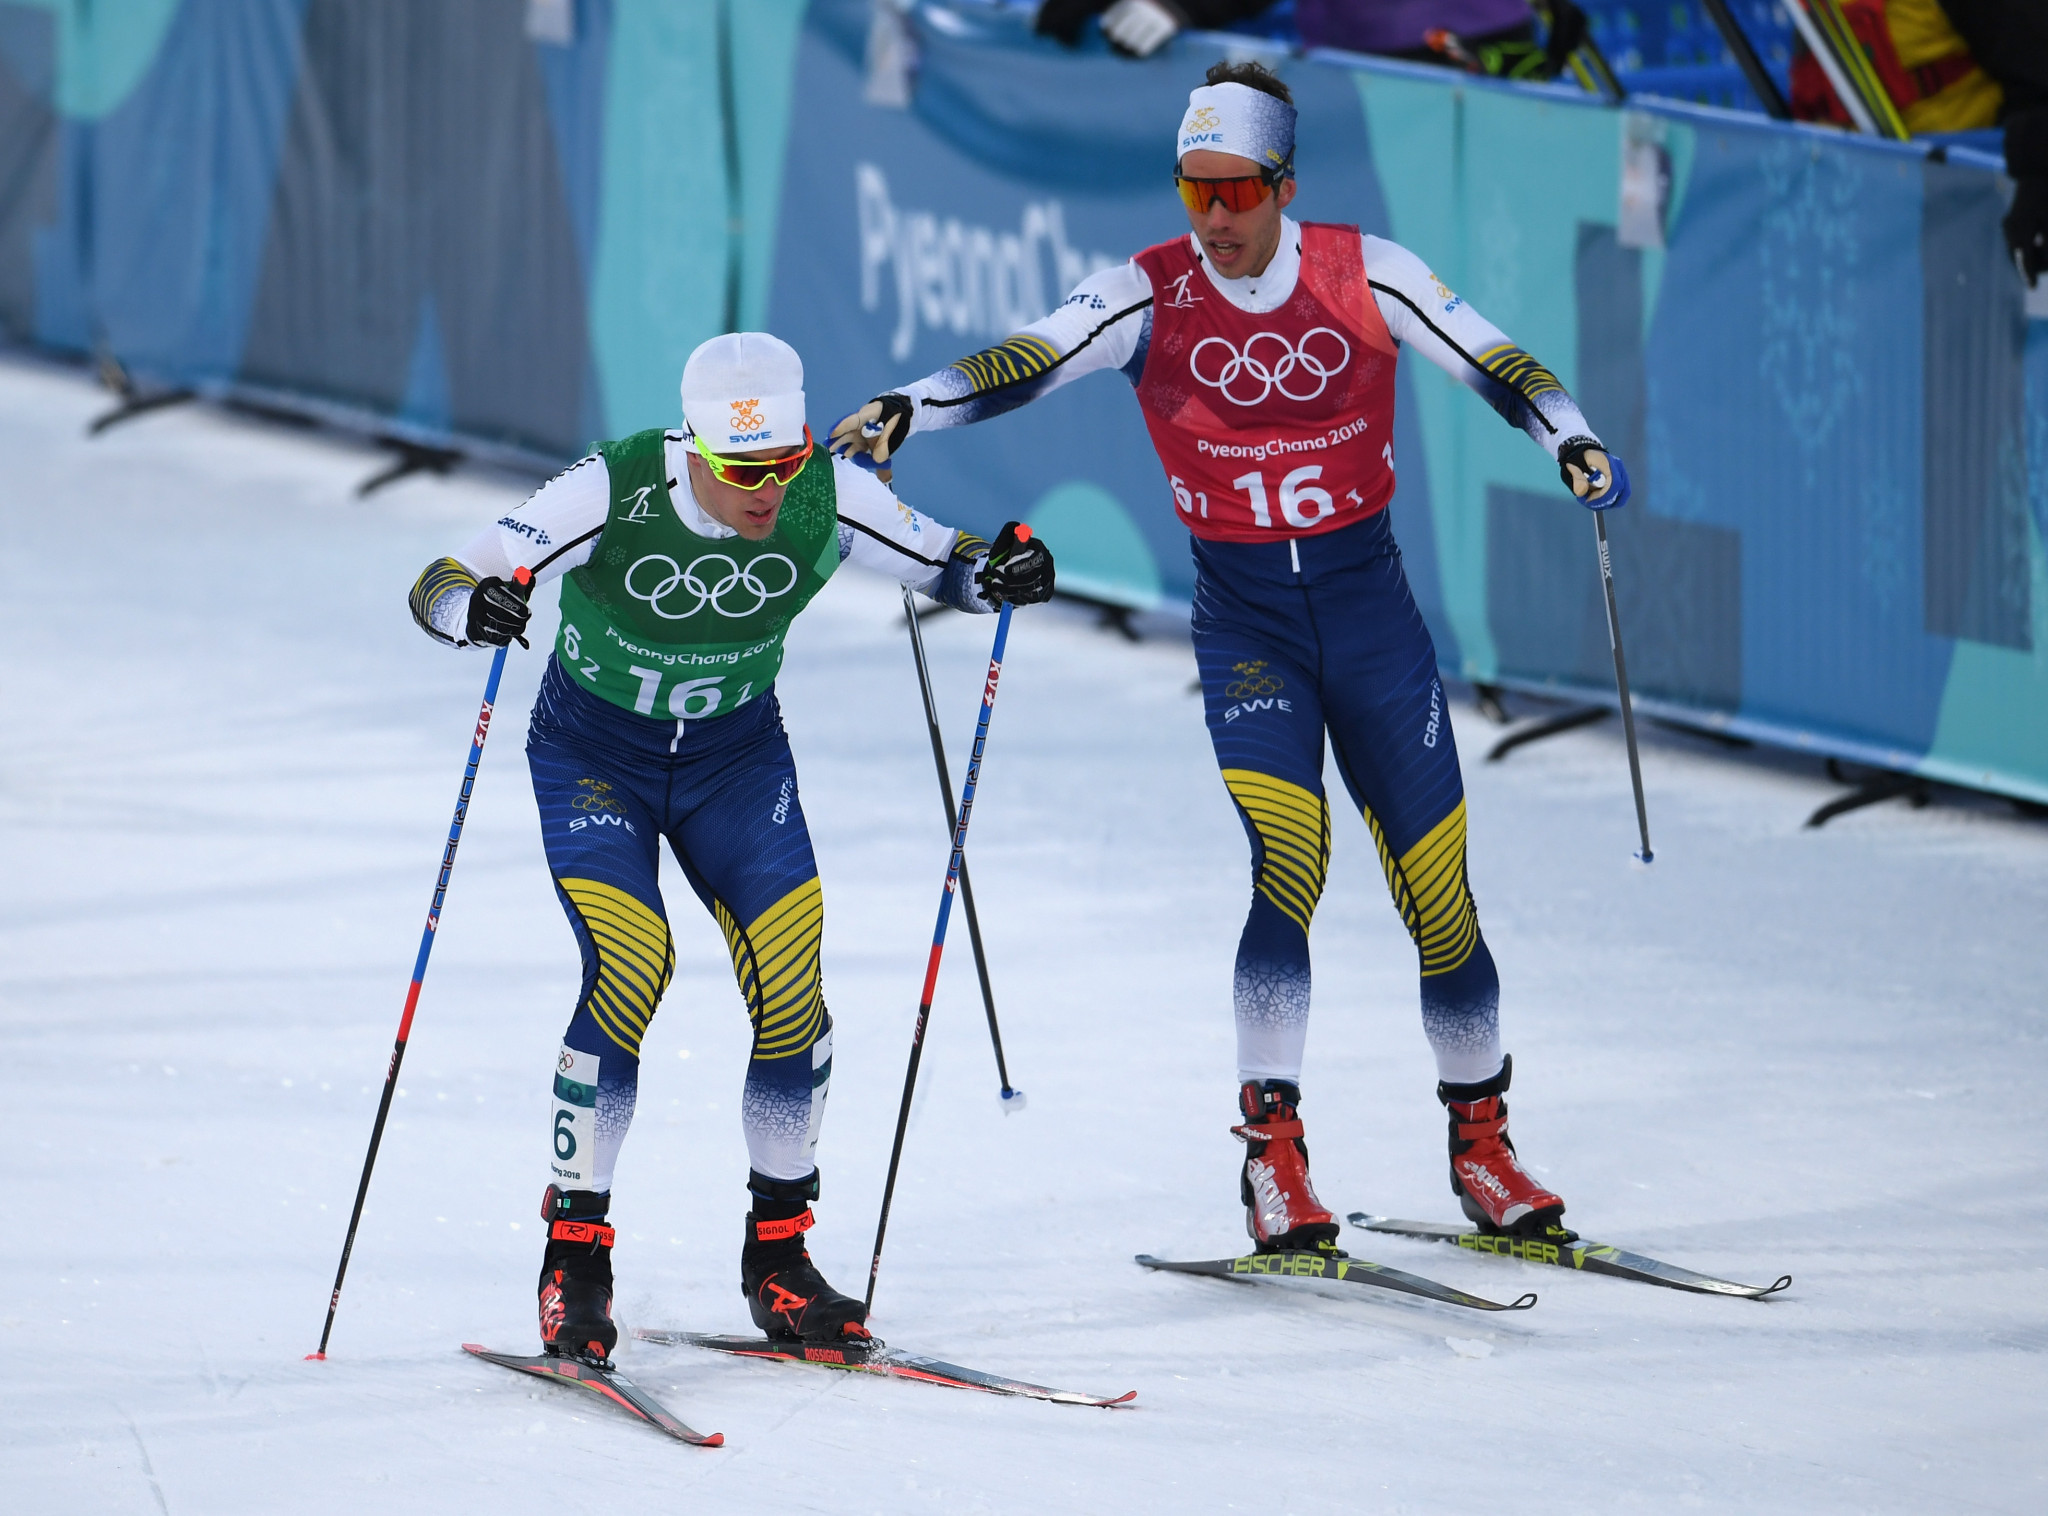 Three-time Olympic cross-country skiing champion Hellner announces retirement